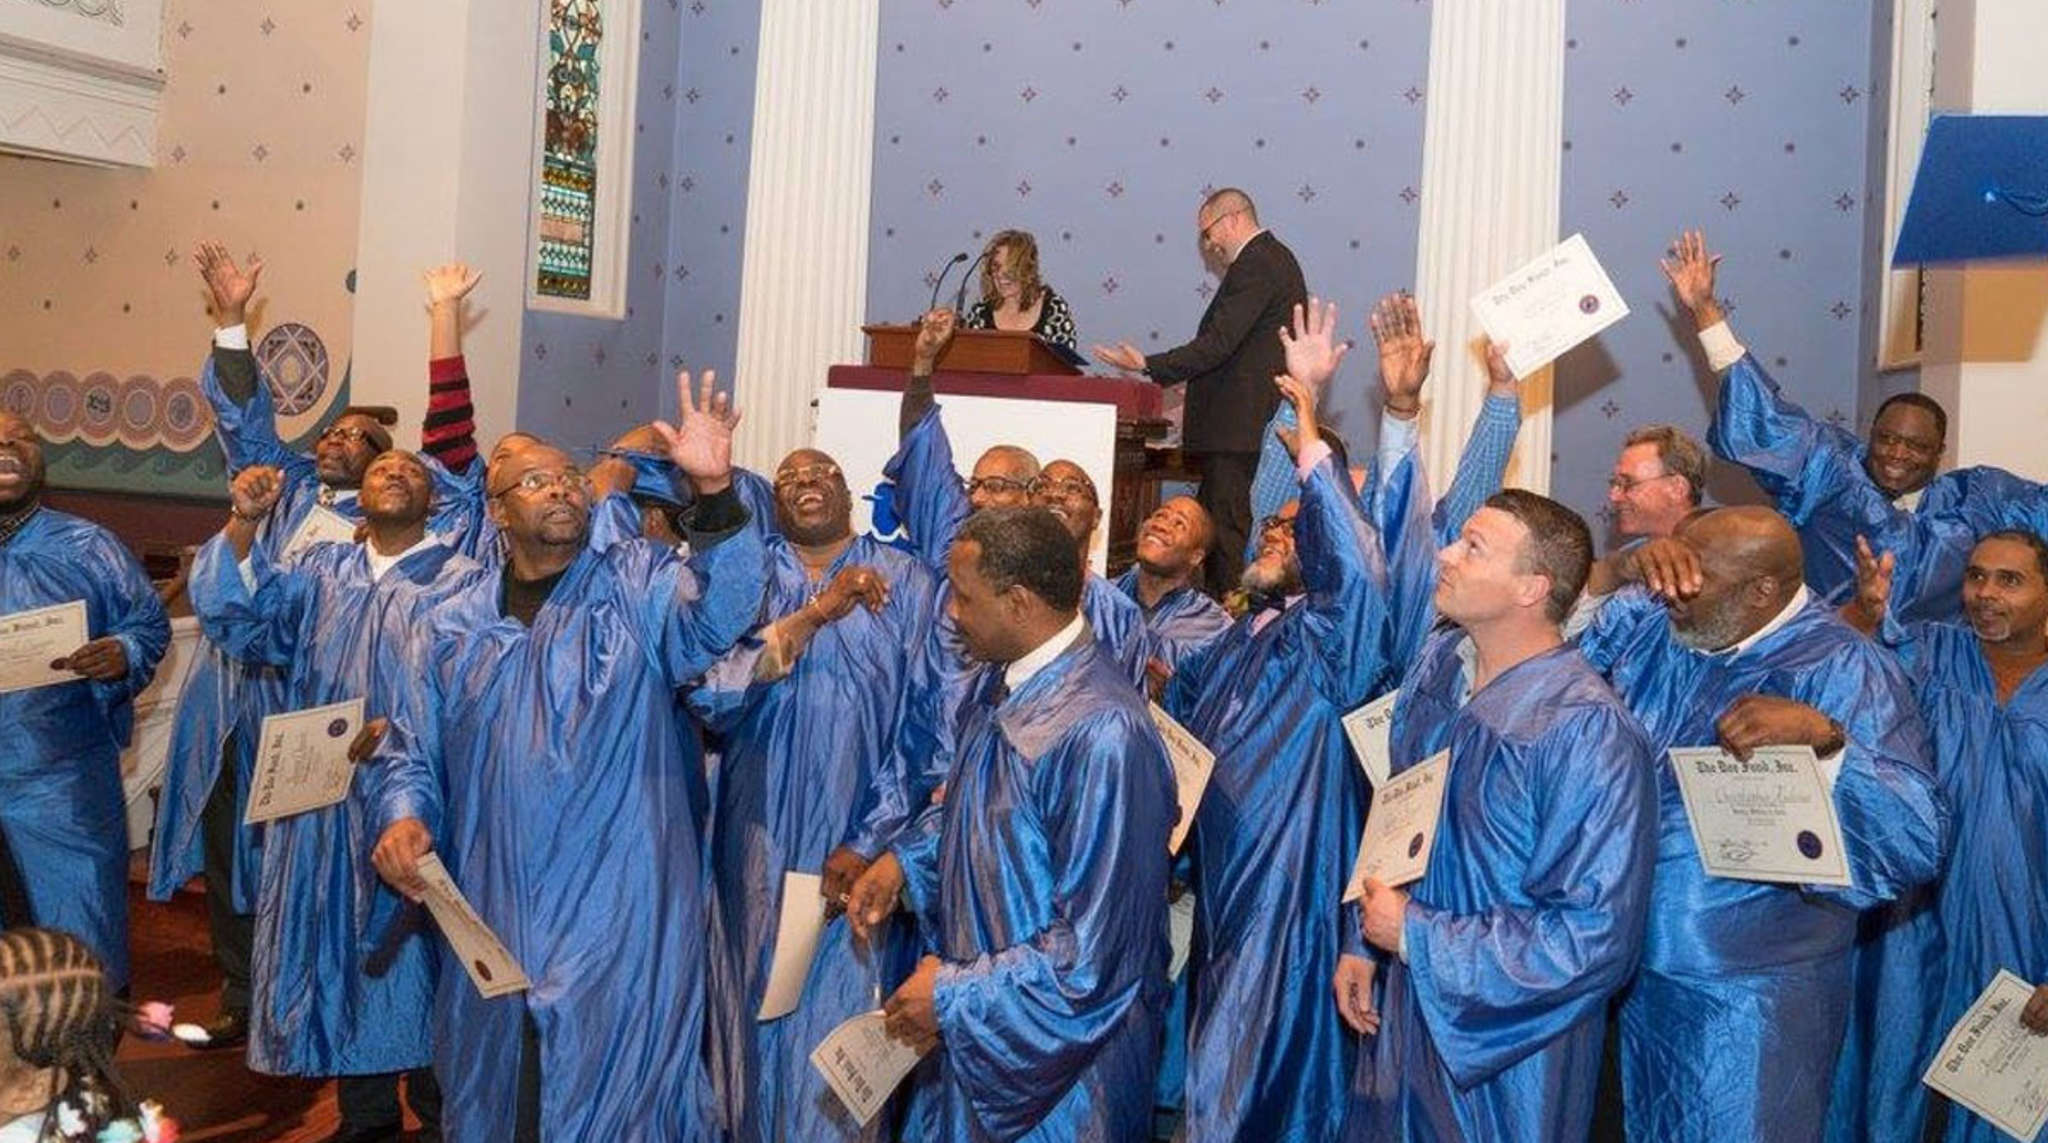 Jubilant Ready, Willing & Able graduates celebrate the beginning of a new life at ceremonies held at Old Pine Street Church. PHOTO: KYLE GARVEY